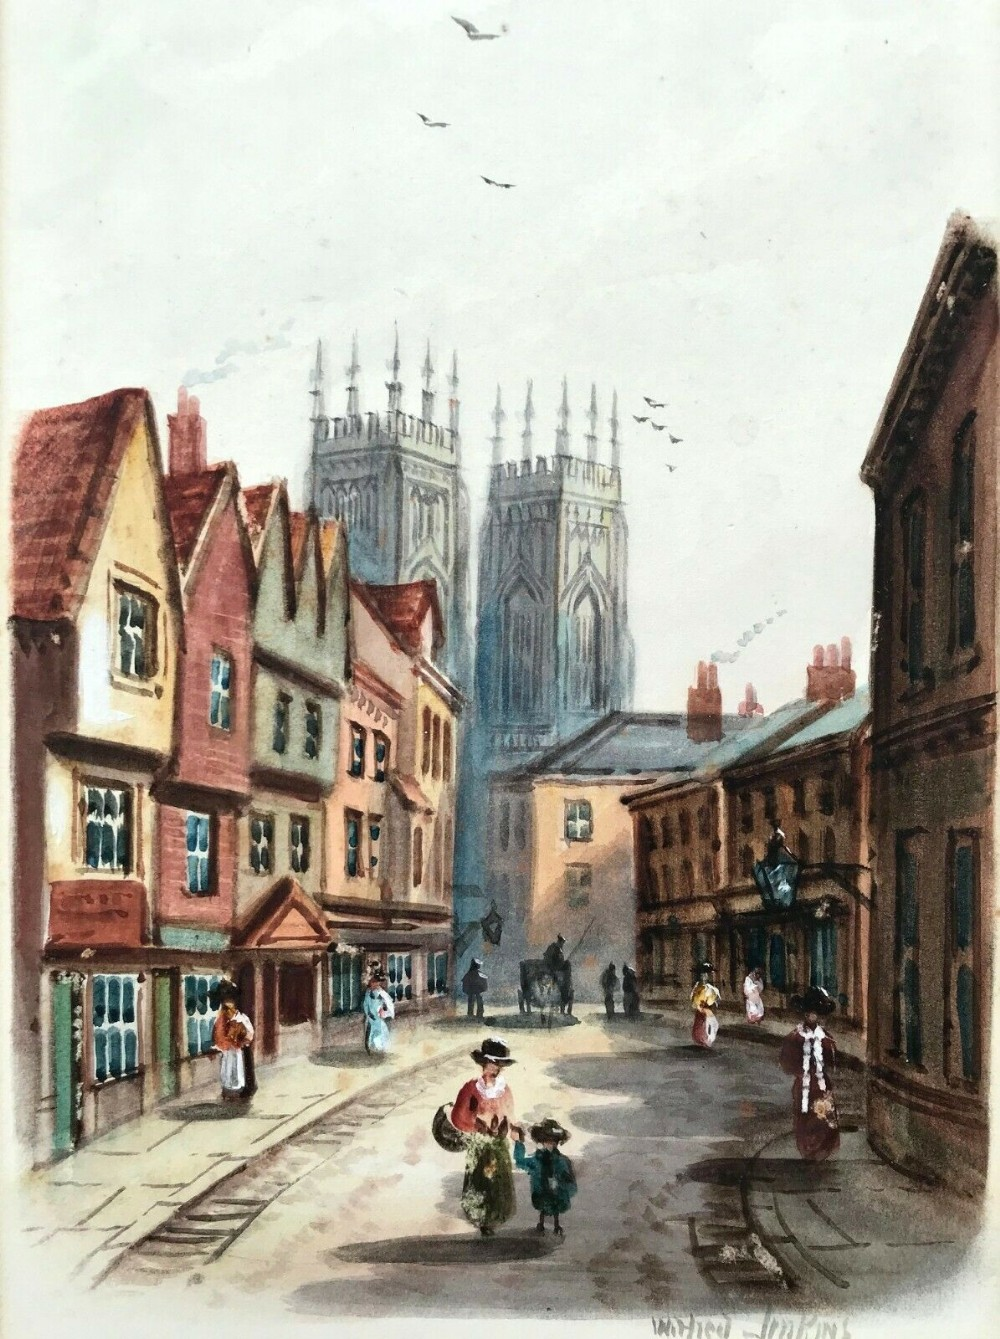 wilfred bosworth jenkins original early 19th century antique watercolour painting petergate york yorkshire landscape